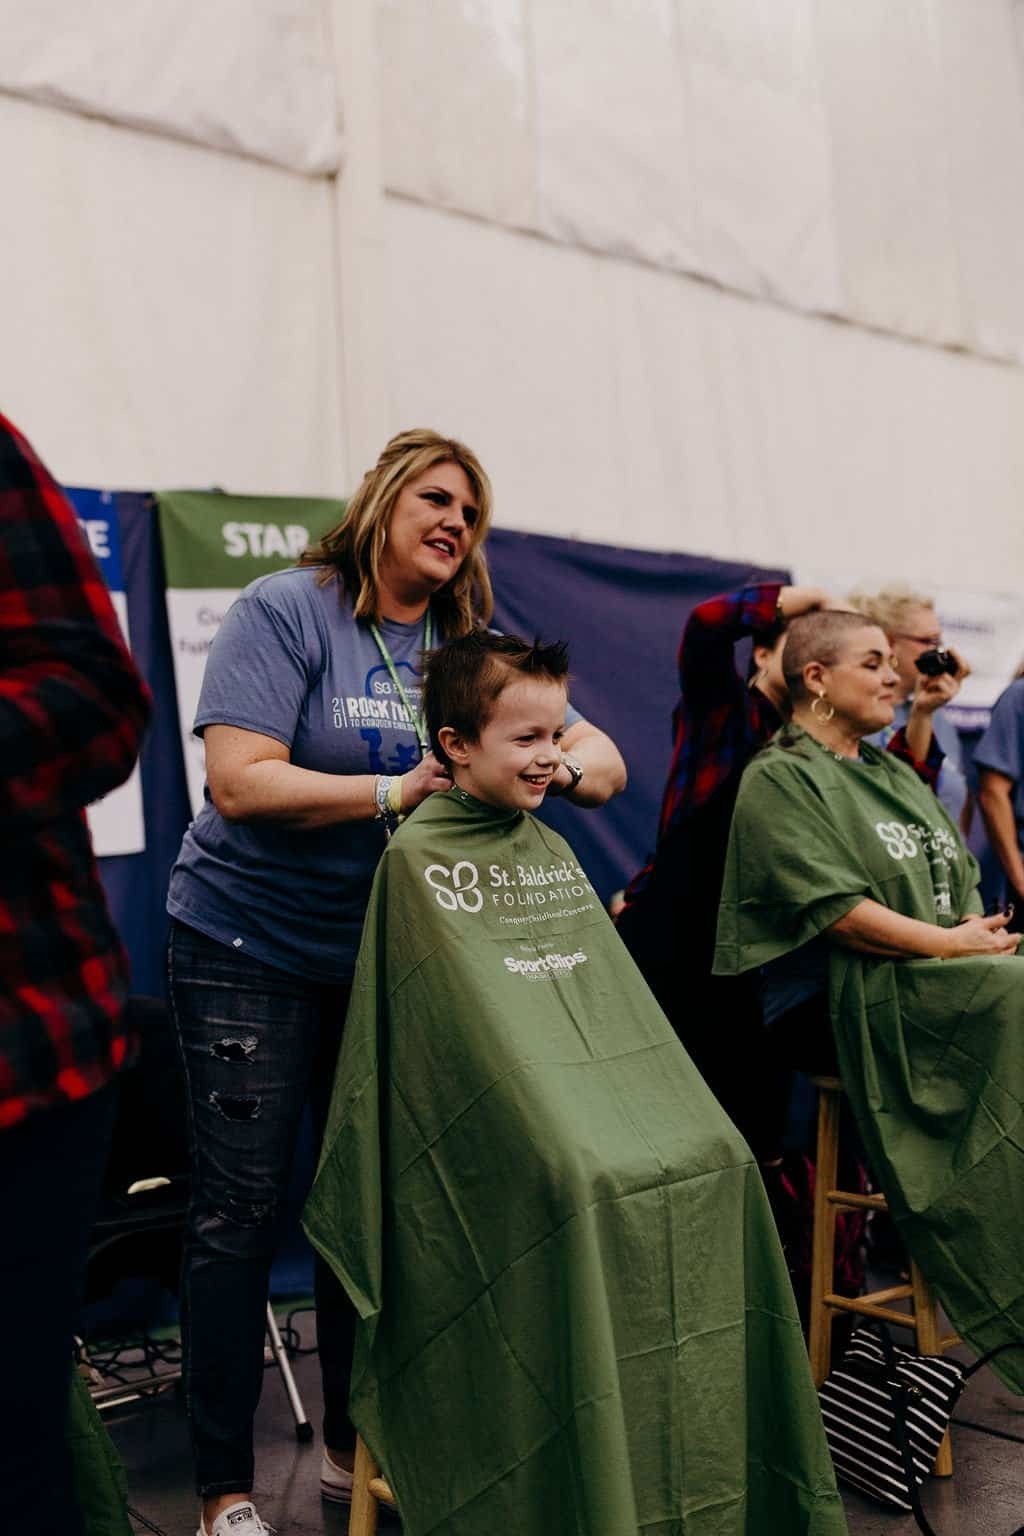 St. Baldricks | I bet you wouldn't shave your head 180